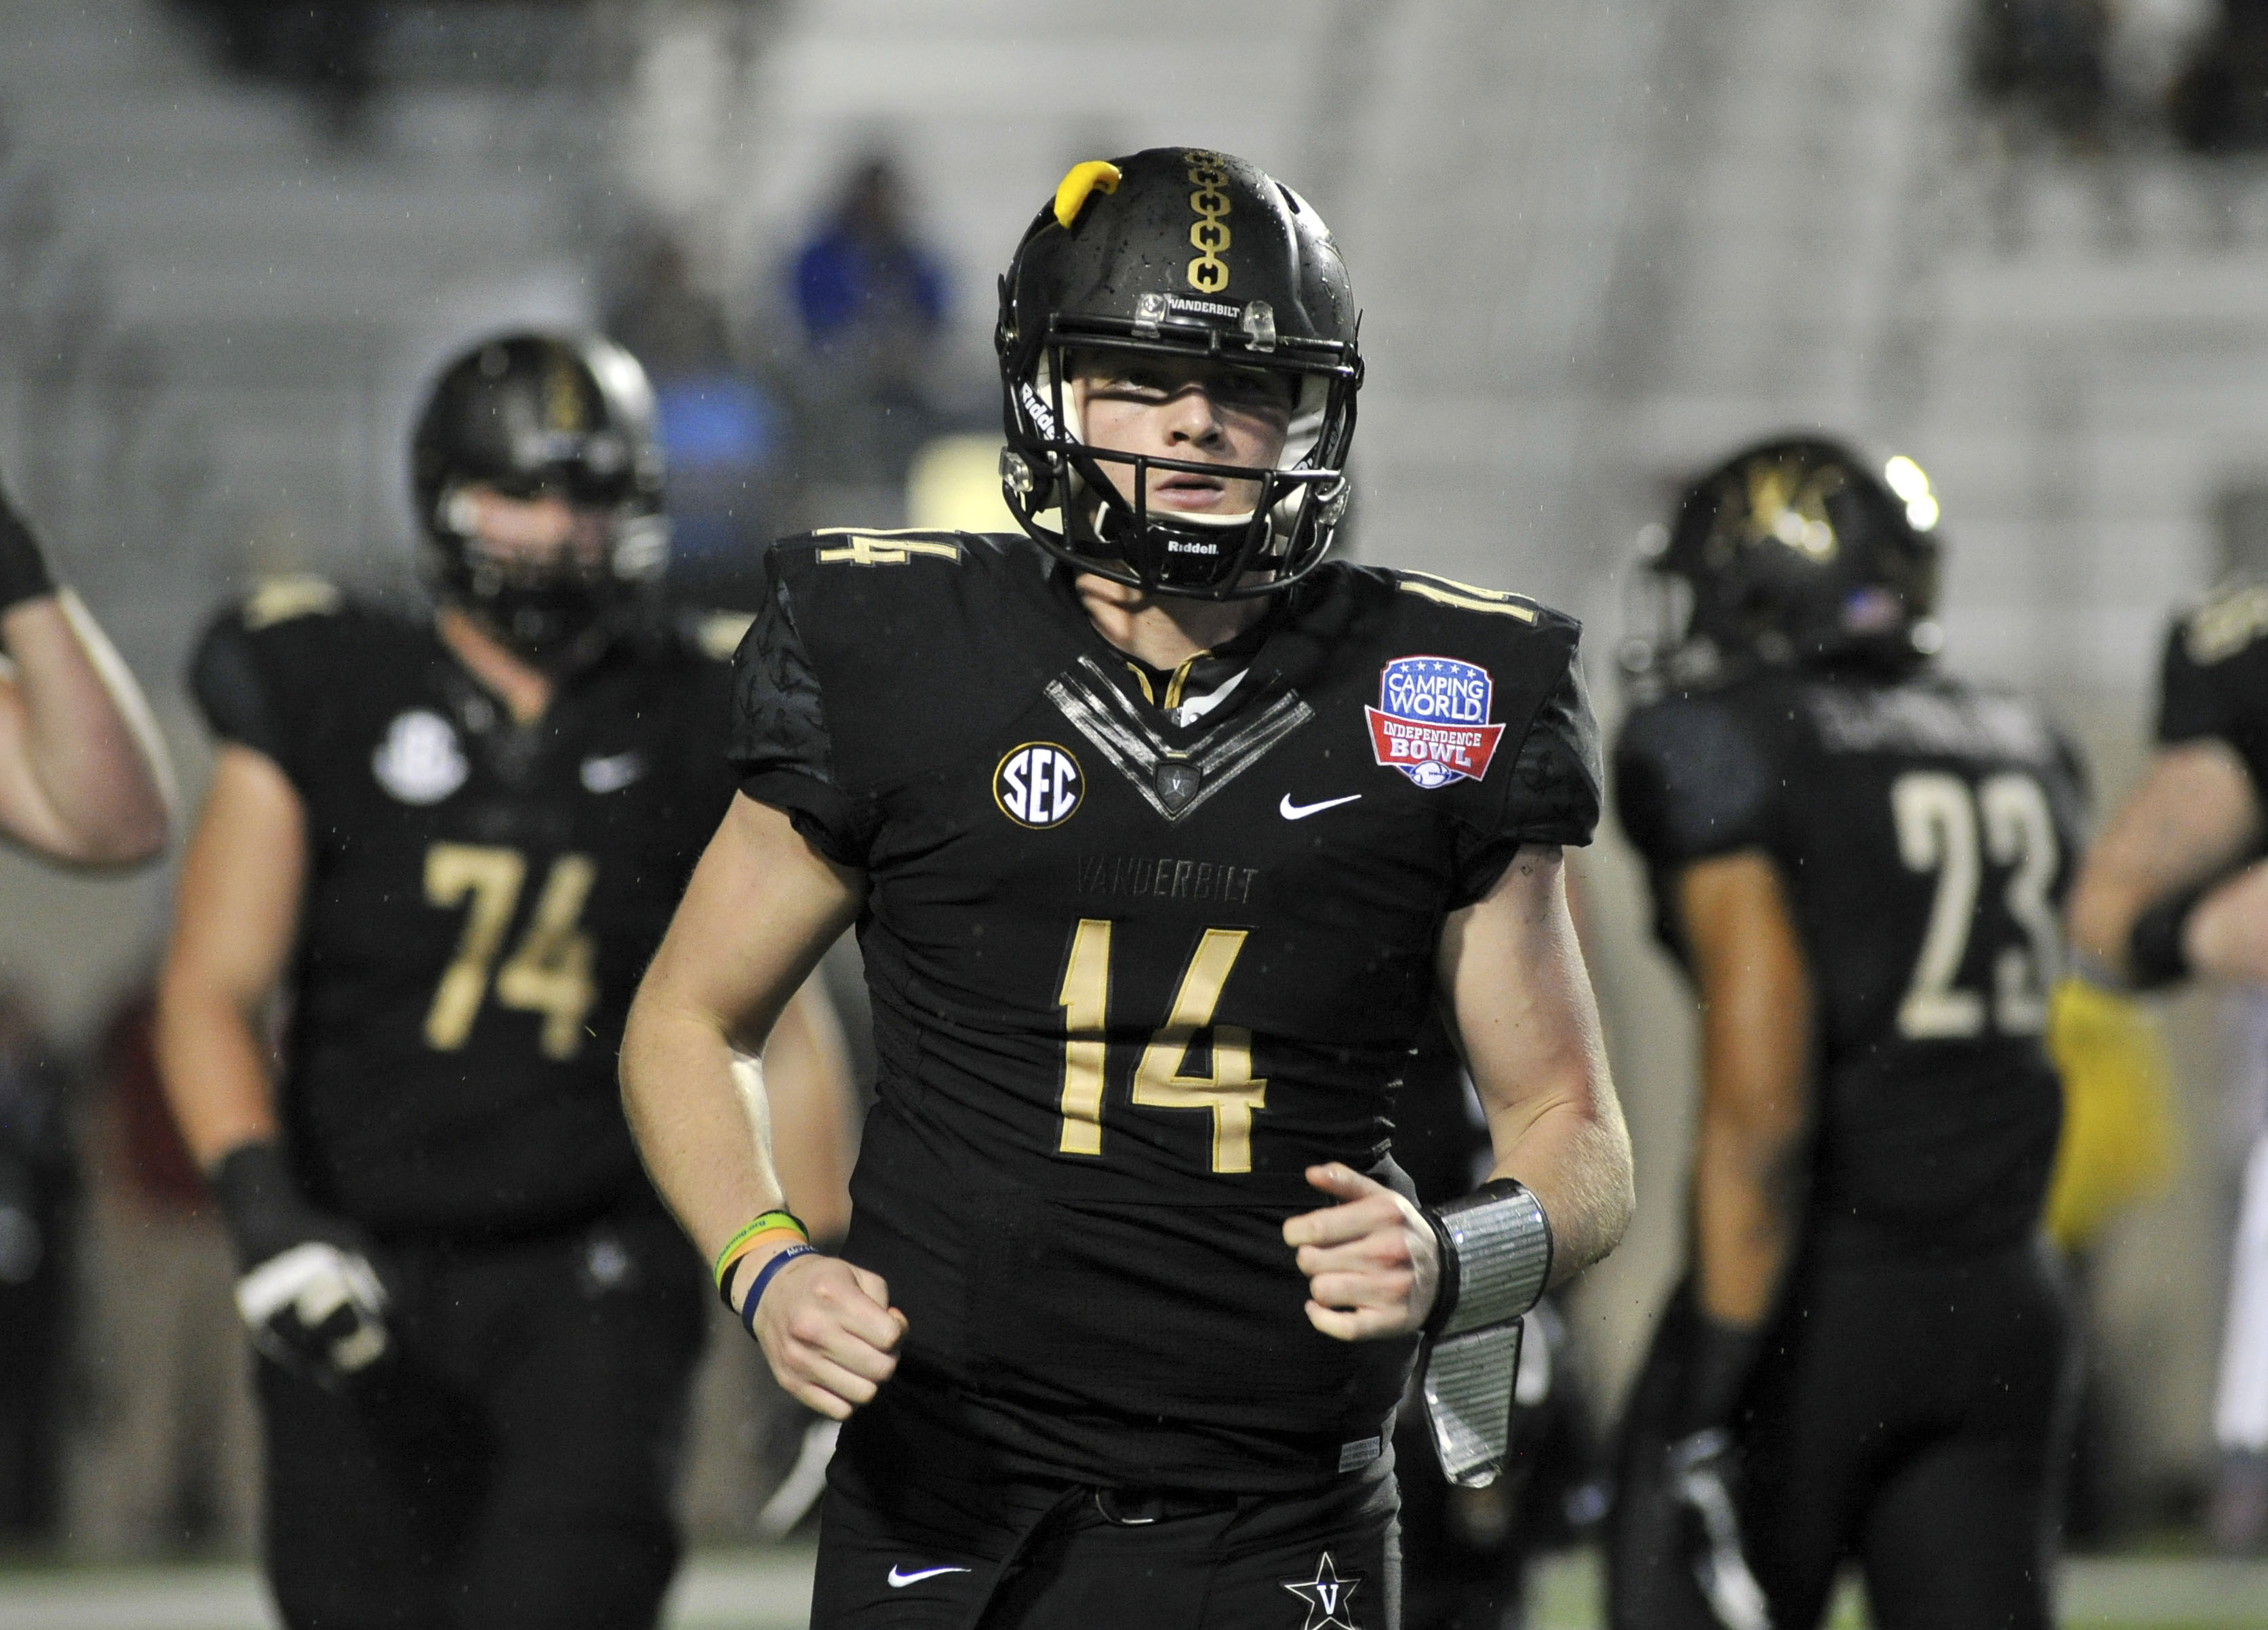 dd4eb776fdc Dec 26, 2016; Shreveport, LA, USA; Vanderbilt Commodores quarterback Kyle  Shurmur (14) comes off the field during the second half against the North  Carolina ...